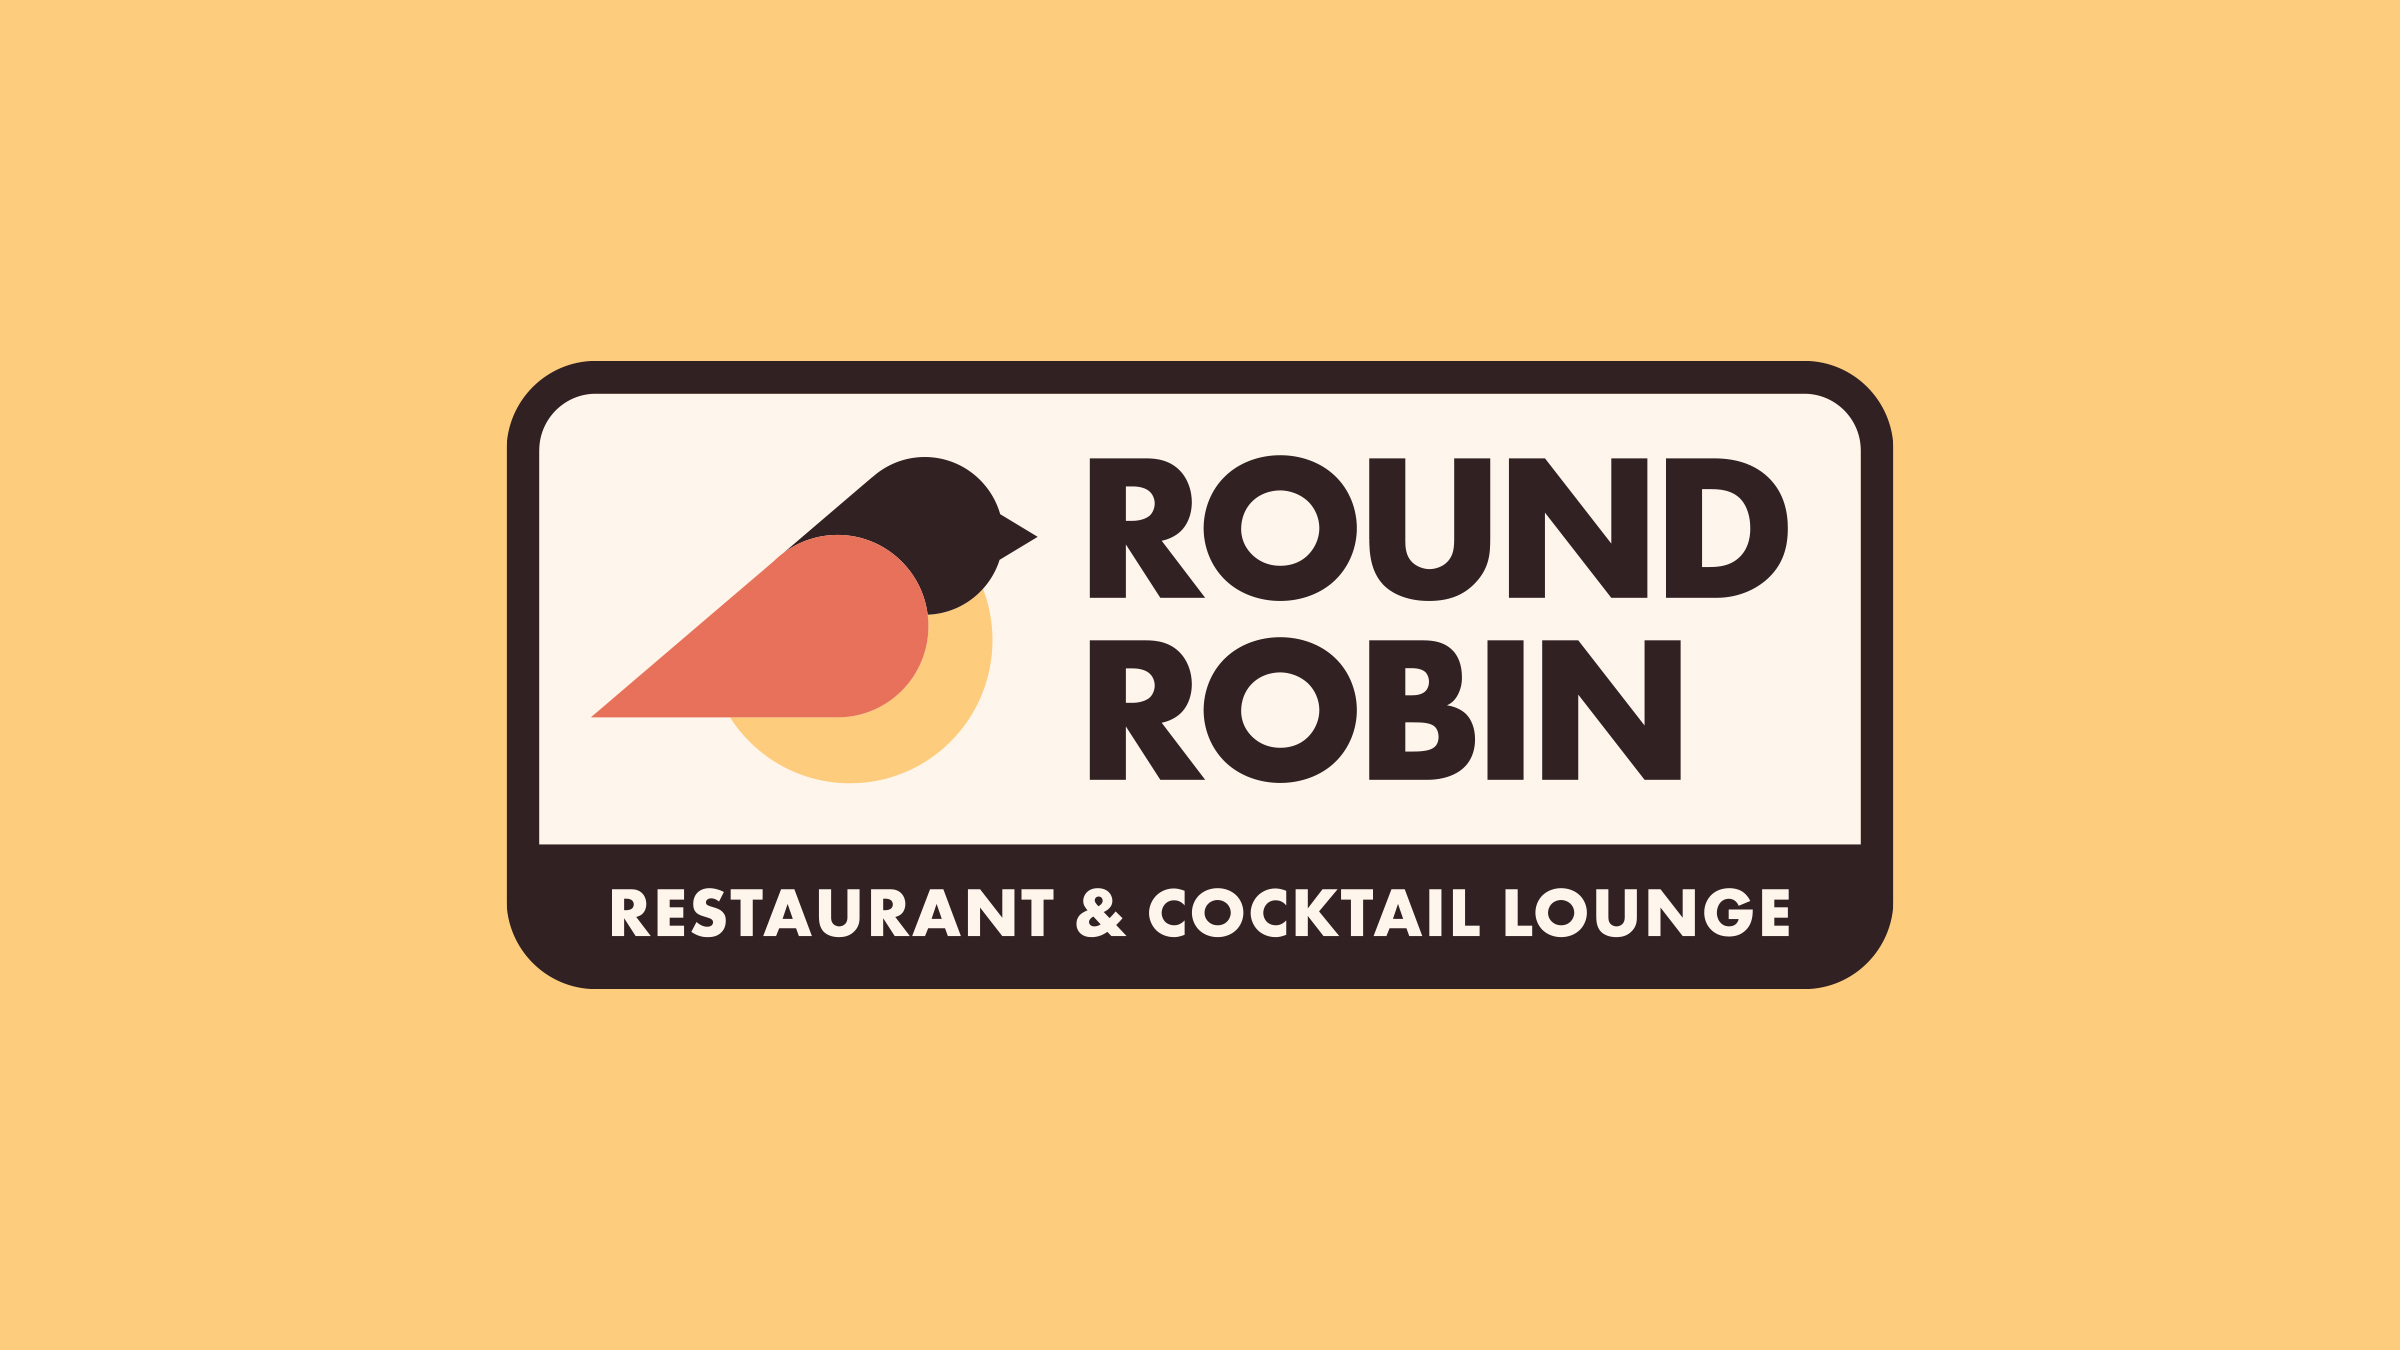 Round Robin Restaurant brand logo brown on yellow